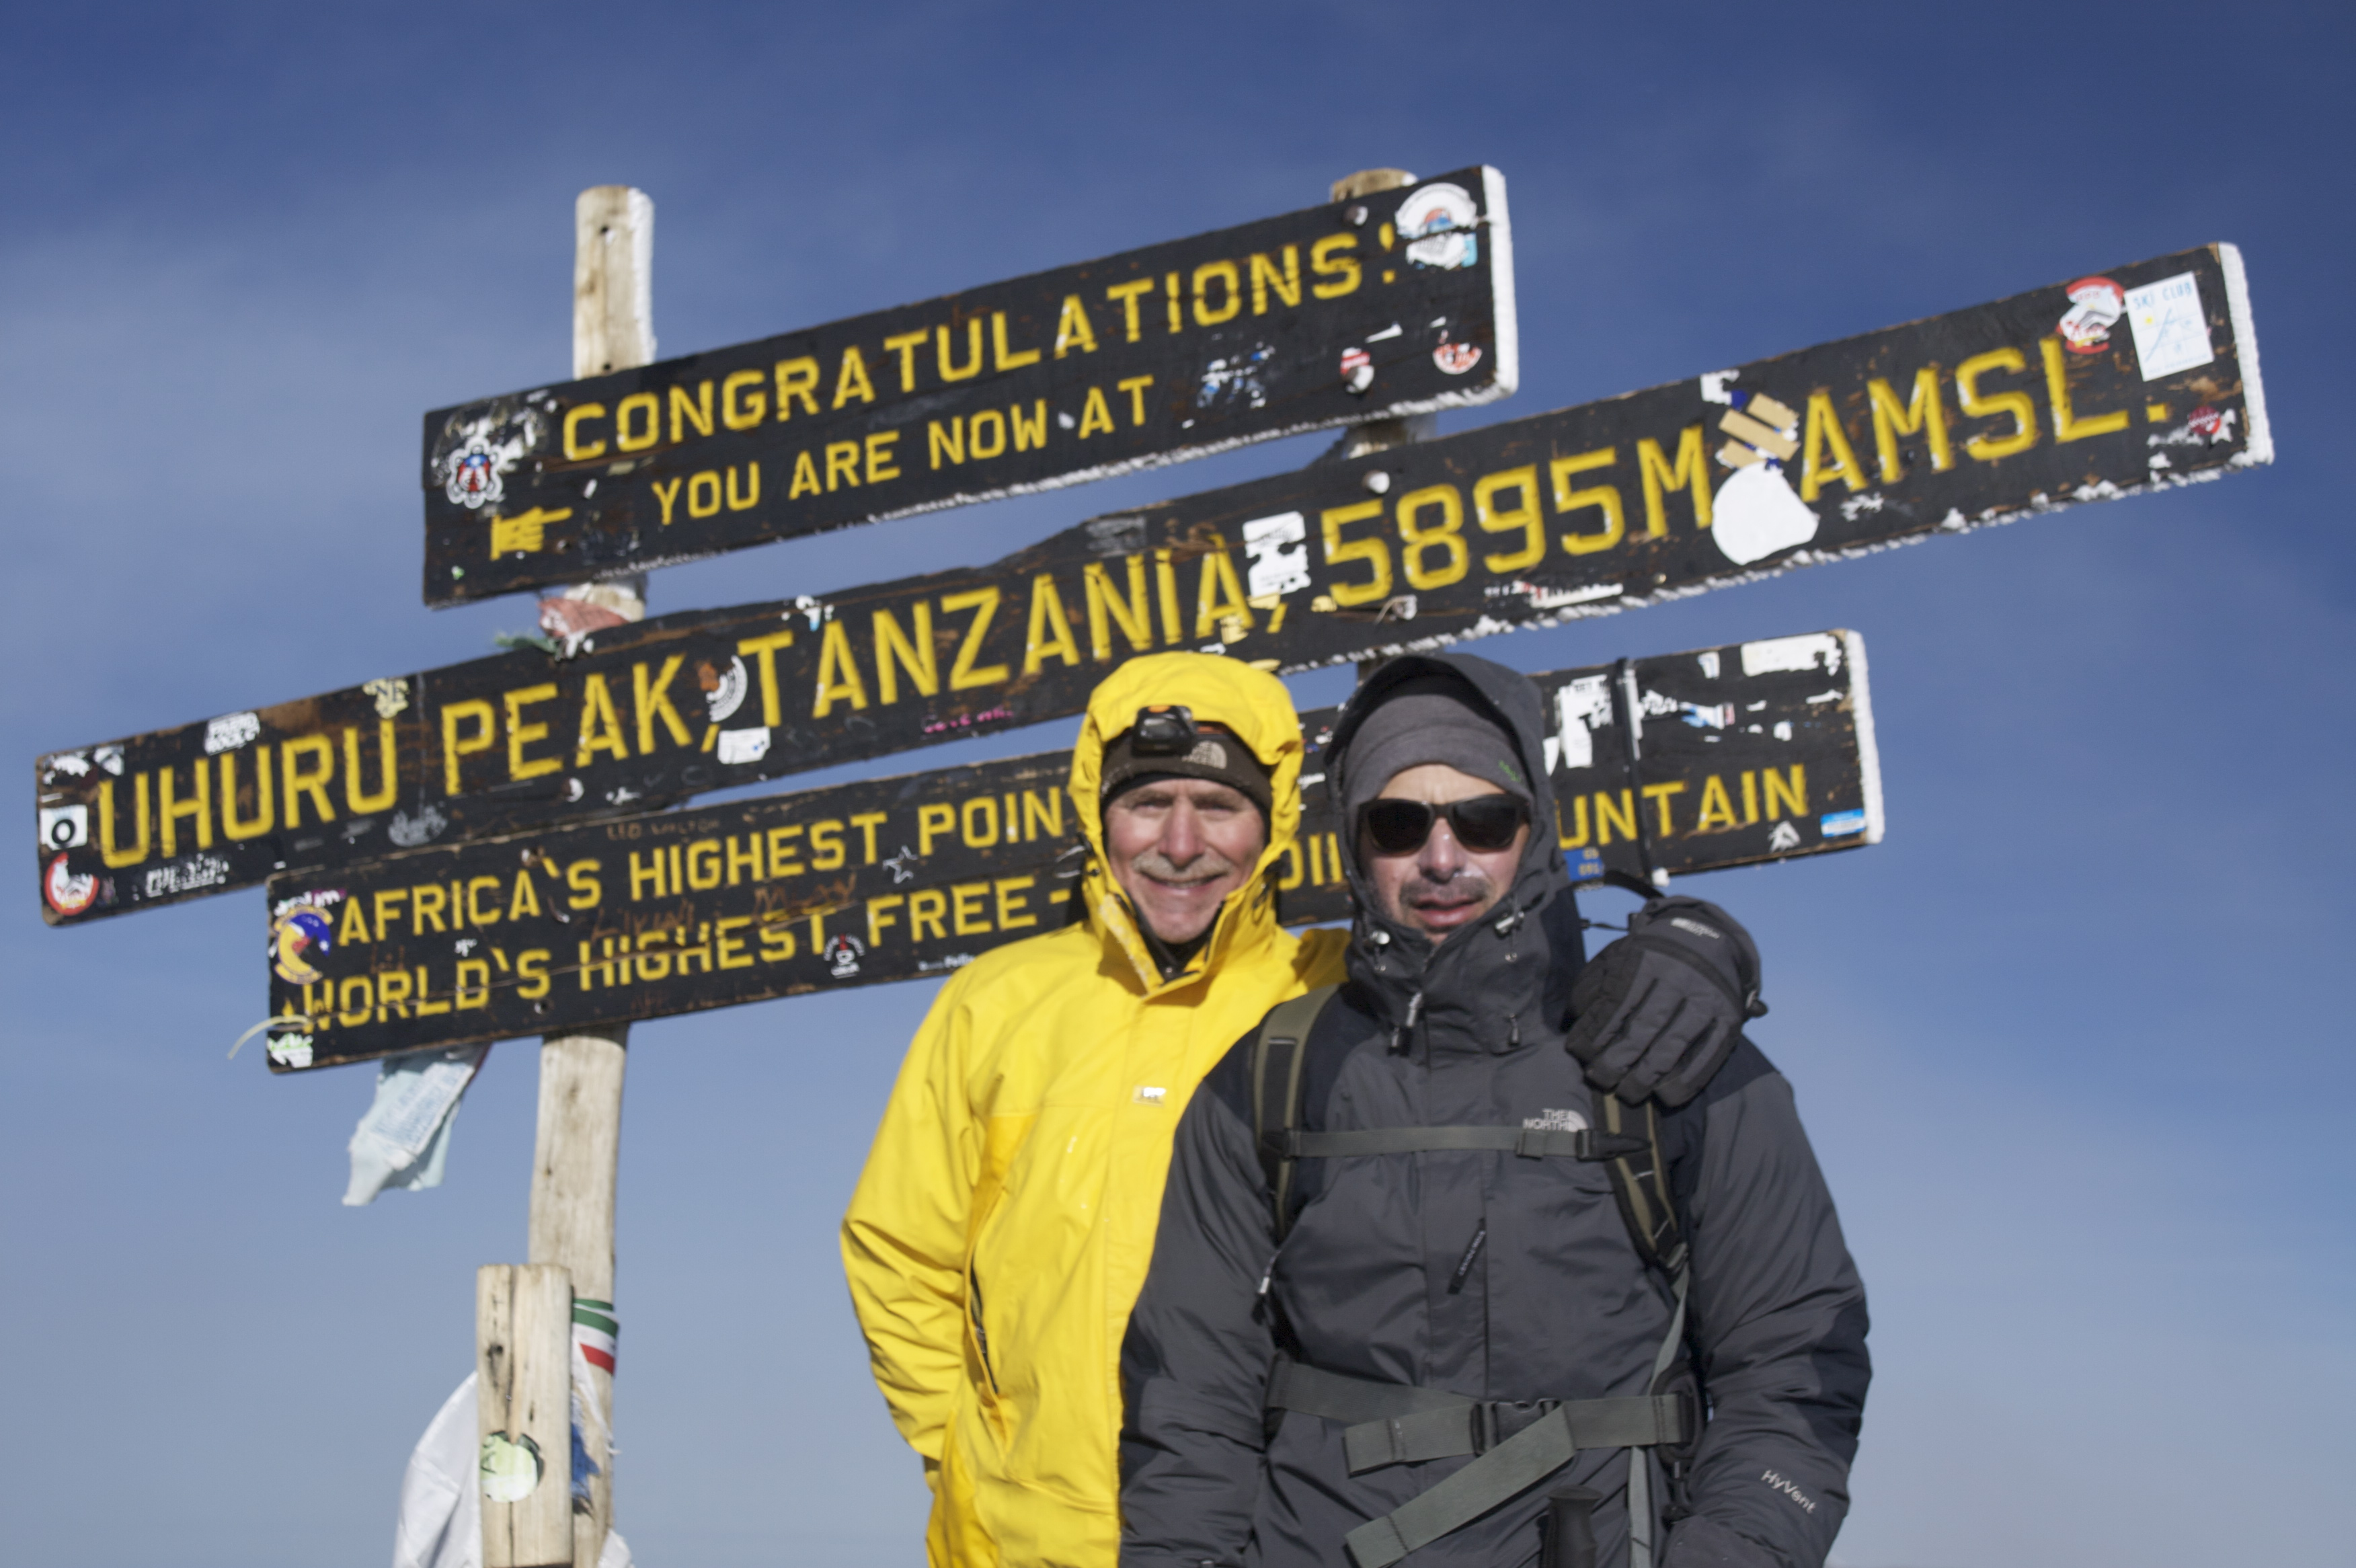 Mount Kilimanjaro Has New Sign on the Summit